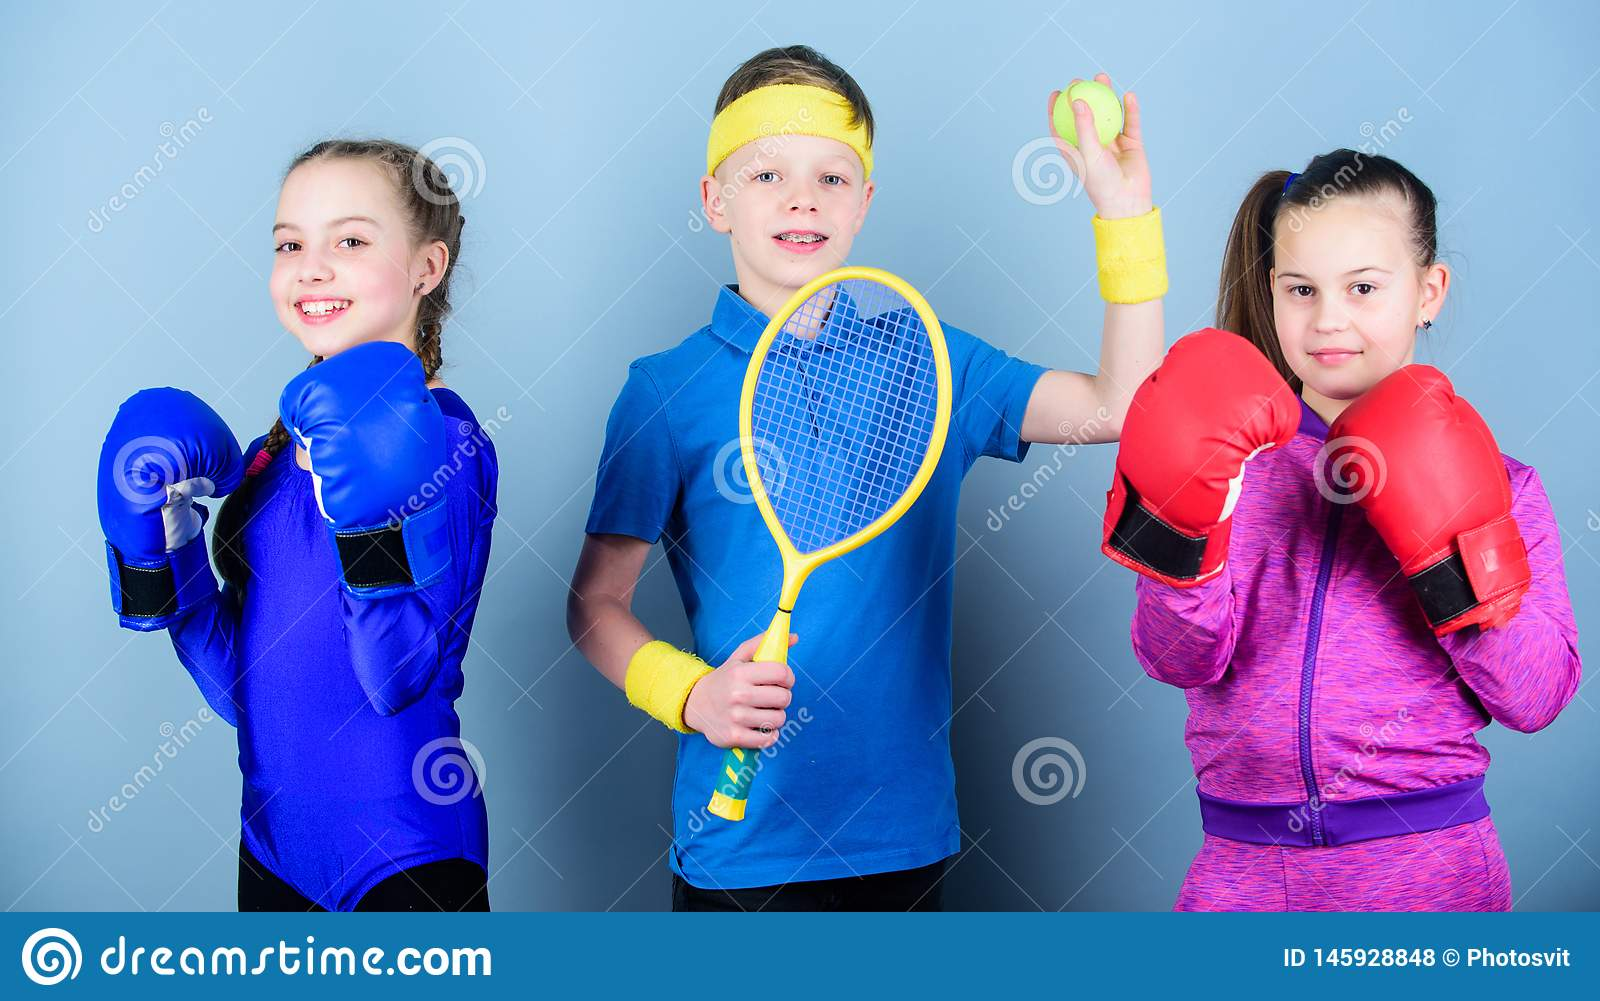 Sporty siblings. Ways to help kids find sport they enjoy. Friends ready for sport training. Child might excel completely